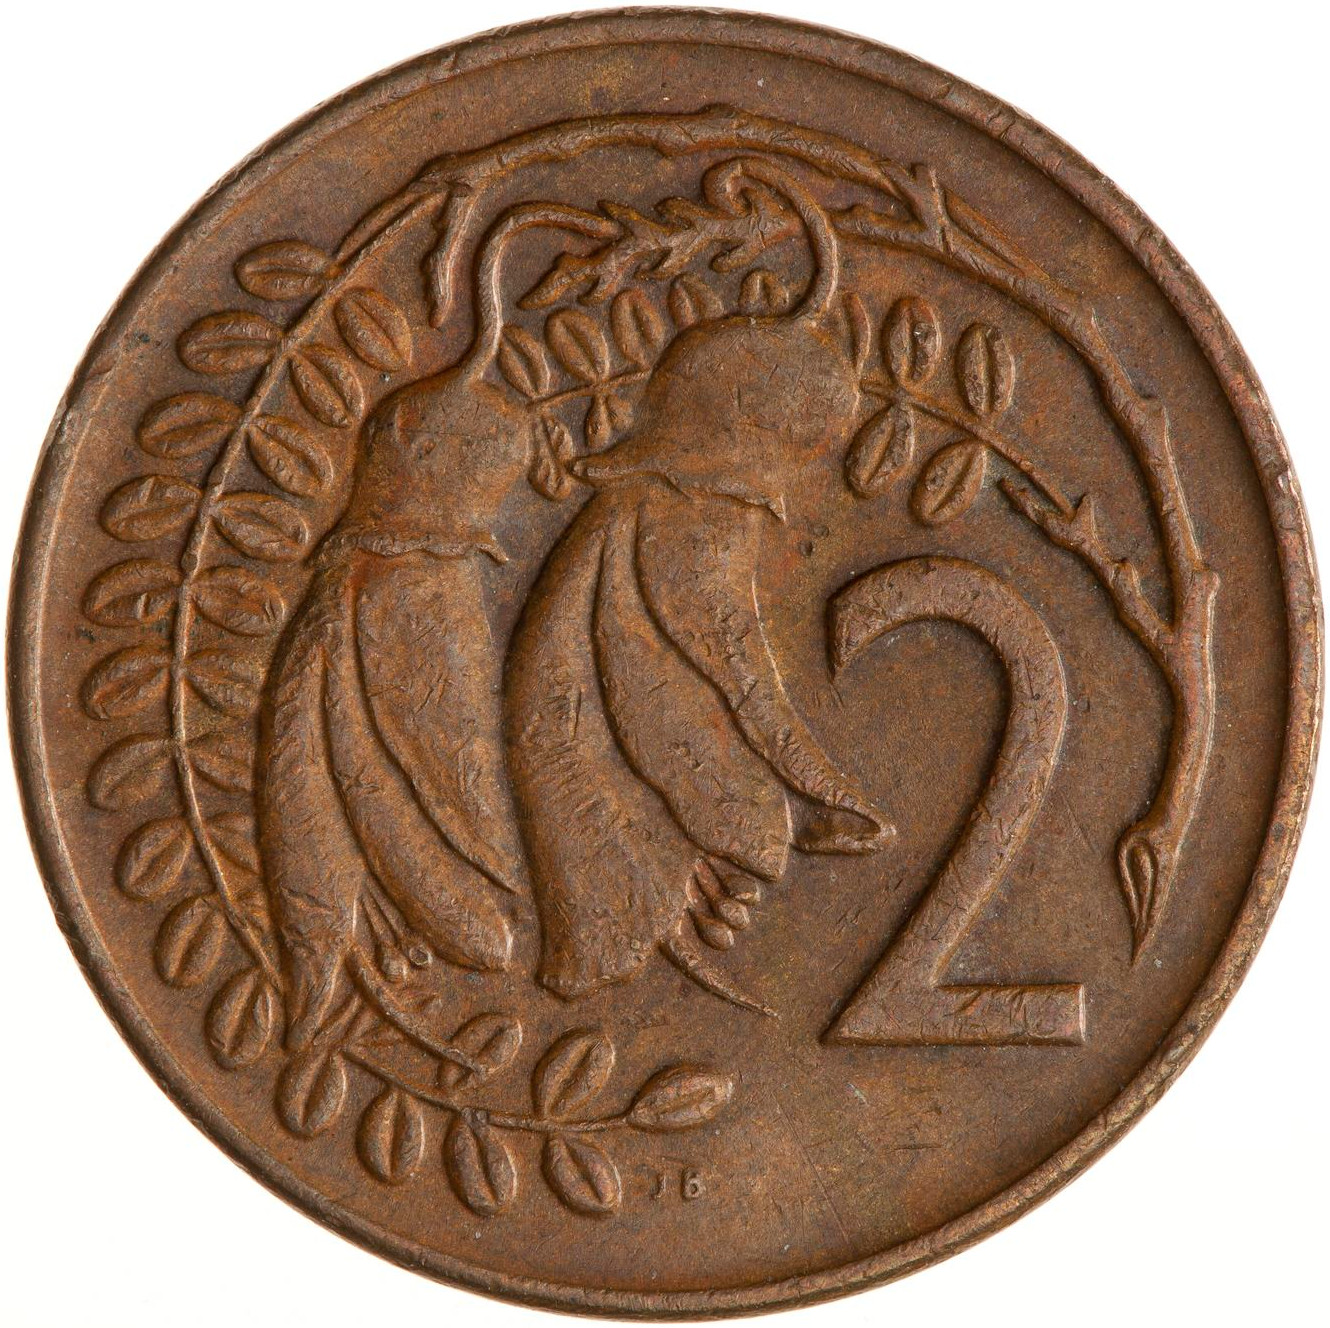 Two Cents 1972: Photo Coin - 2 Cents, New Zealand, 1972